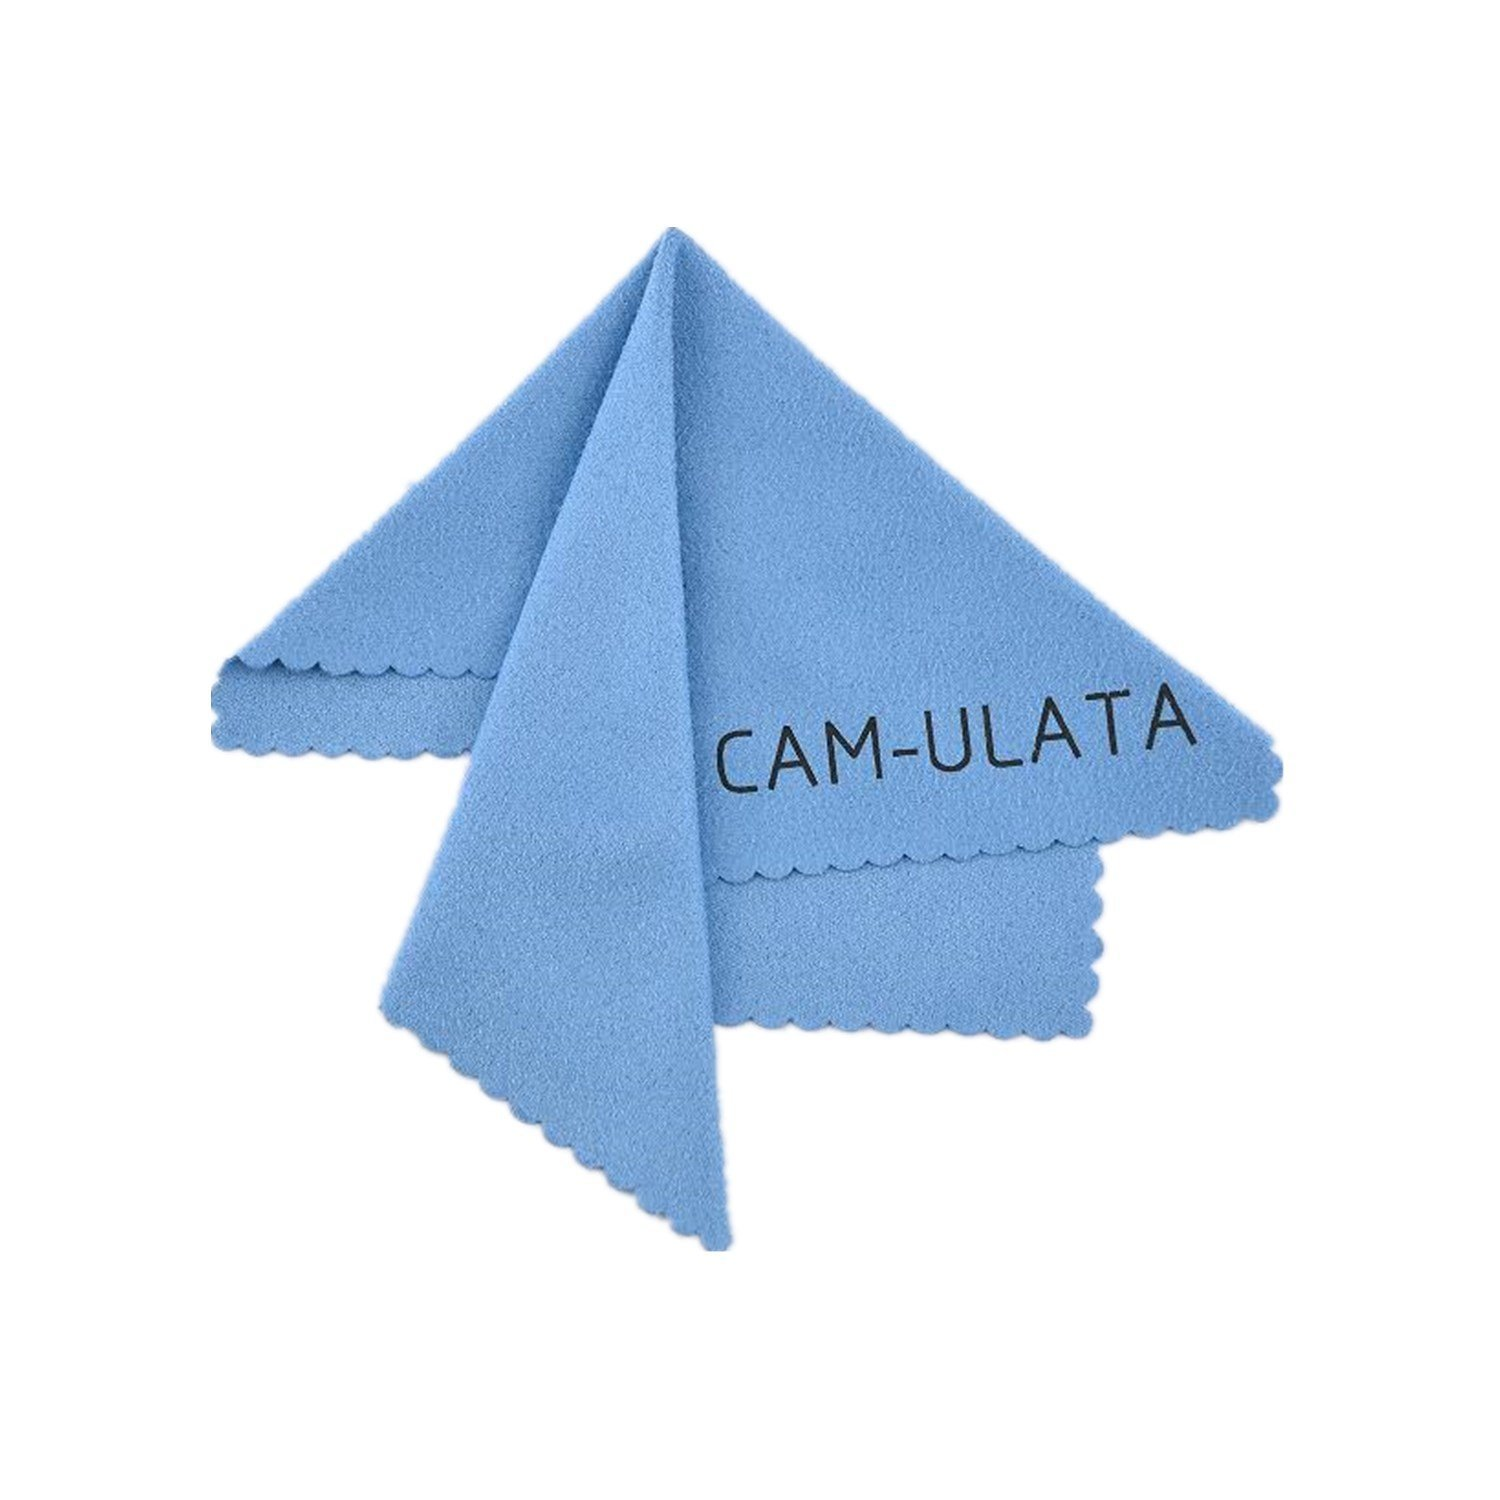 CAM-ULATA 10 Teiliges Filteradapter Step Down Ringe Set 37-30mm, 49-37mm, 52-49mm, 55-52mm, 58-55mm, 62-58mm, 67-62mm, 72-67mm, 77-72mm, 82-77mm Objektivadapter Adapterringe Filteradapter Schwarz für Canon Nikon Sony Sigma